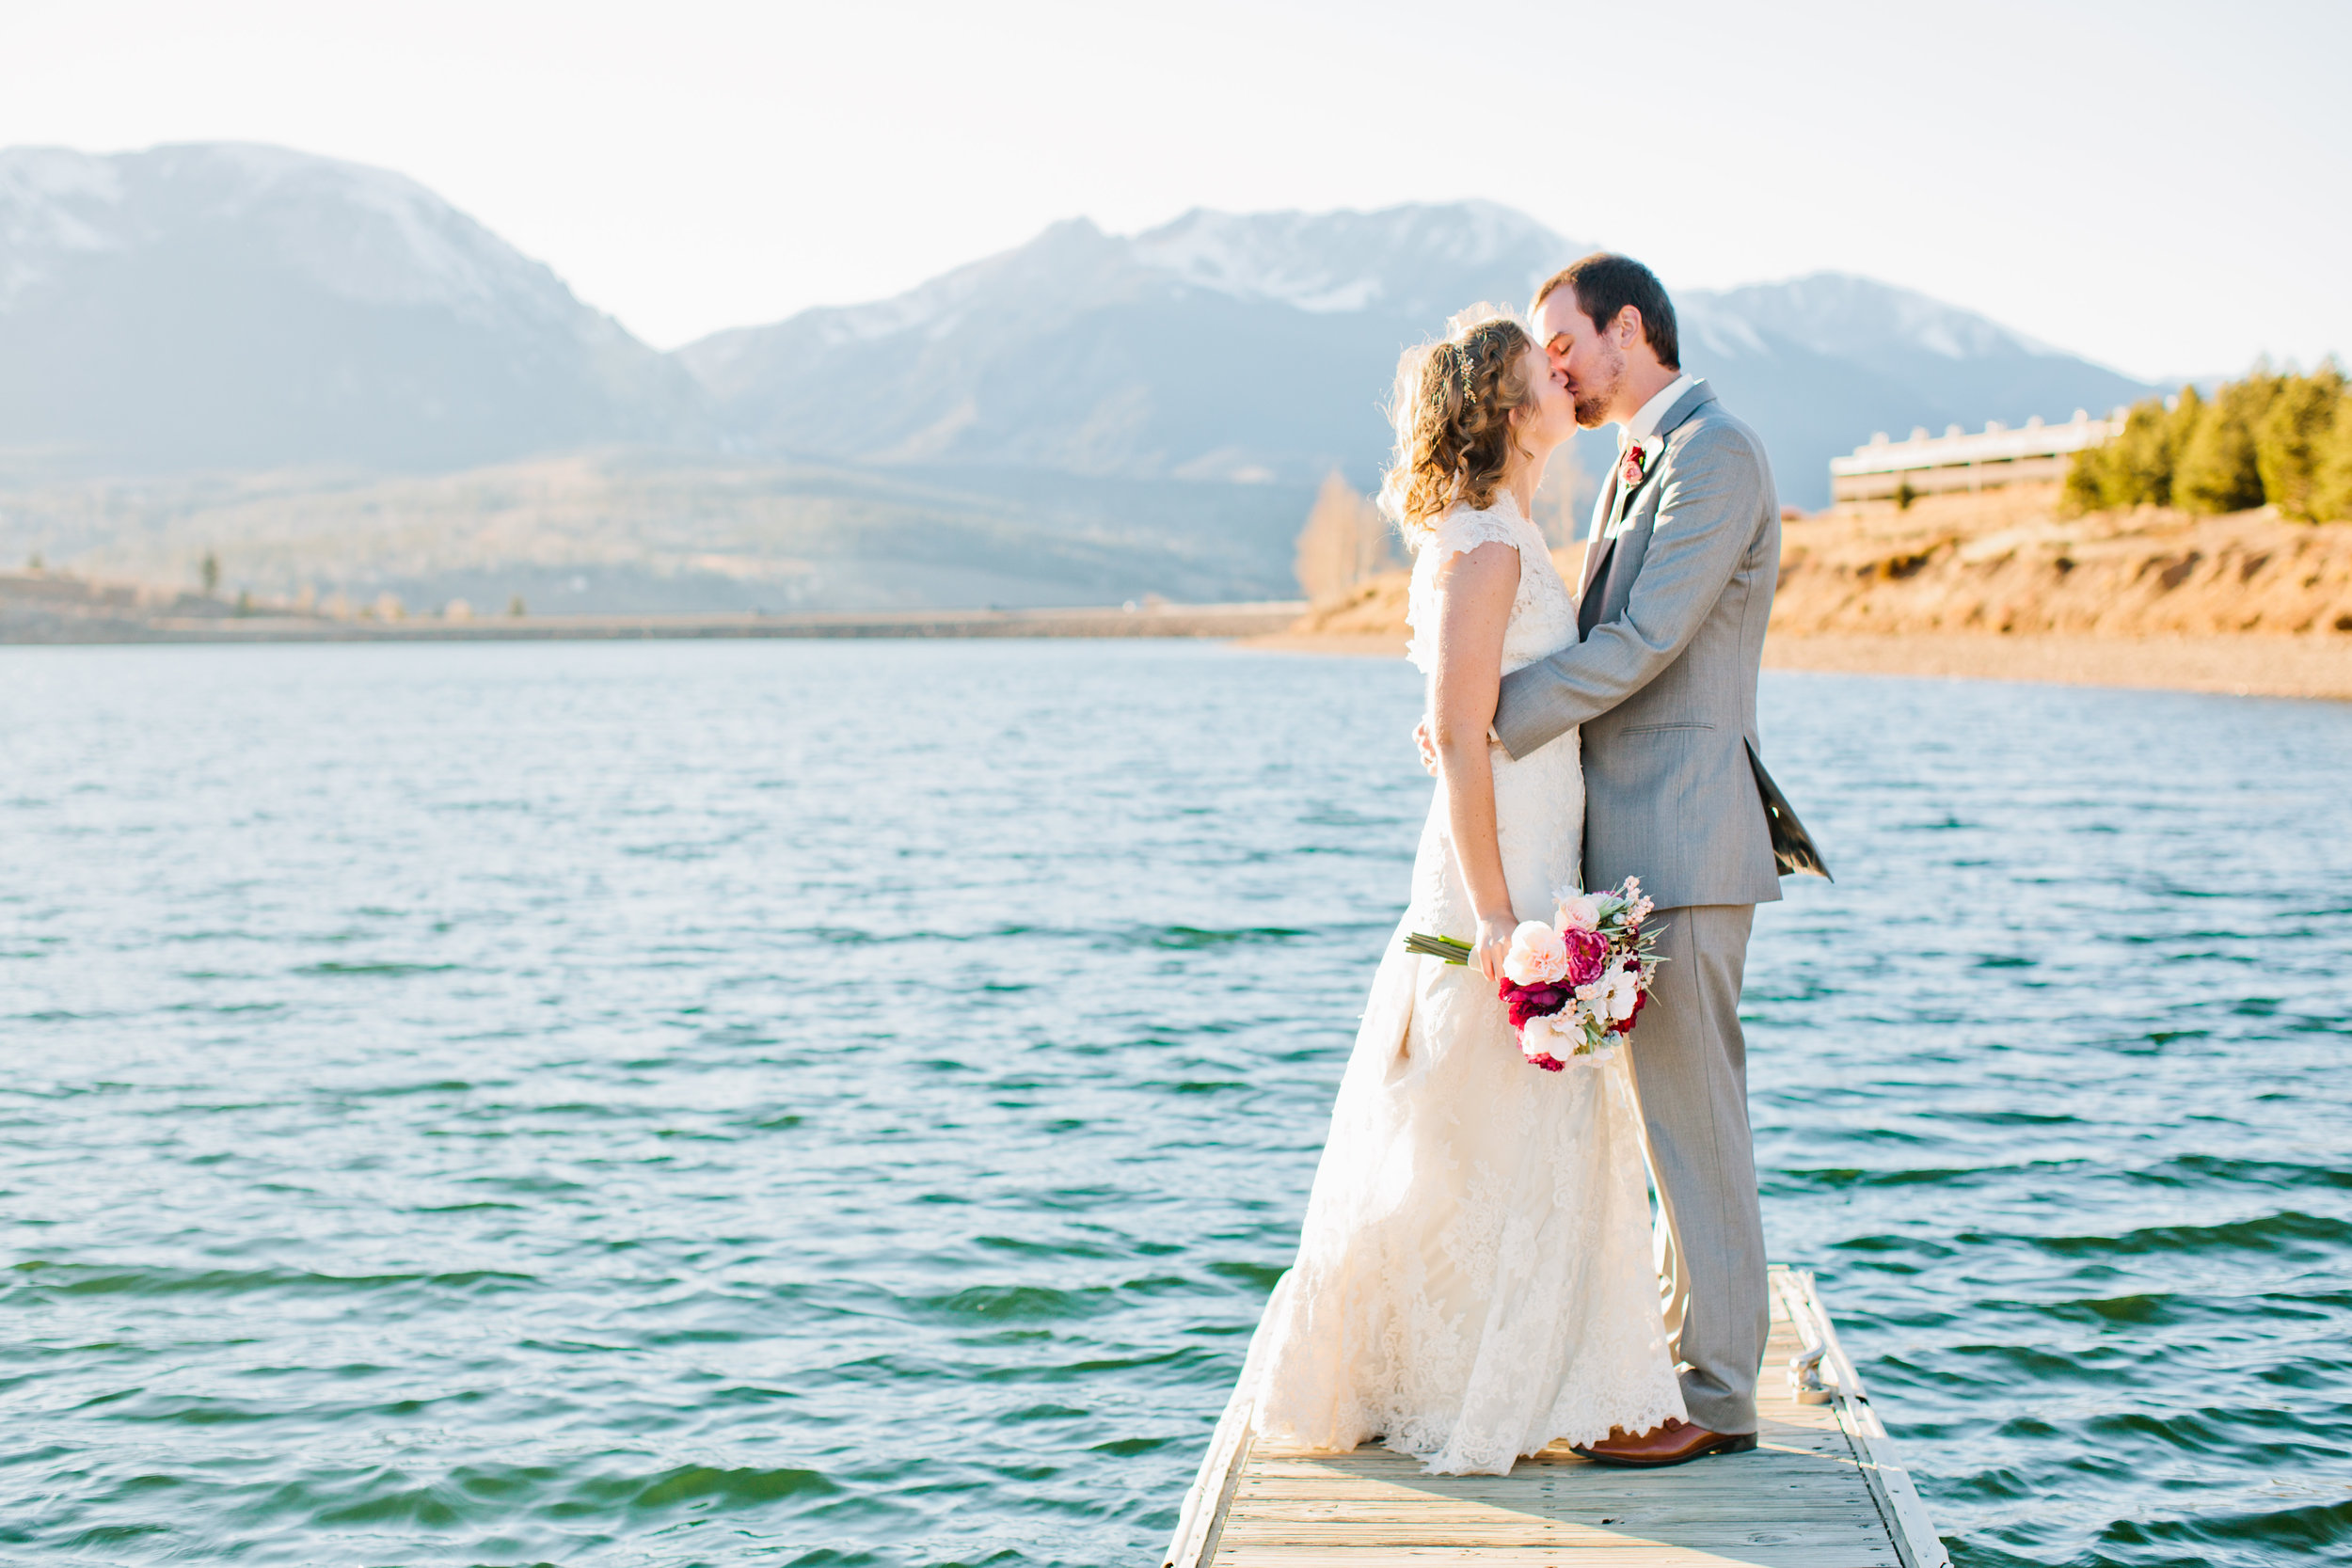 This wedding day in Colorado was incredible! Mountain and Lakeside weddings are the best, in my book. I can't wait to photograph my 3rd Colorado wedding this summer!